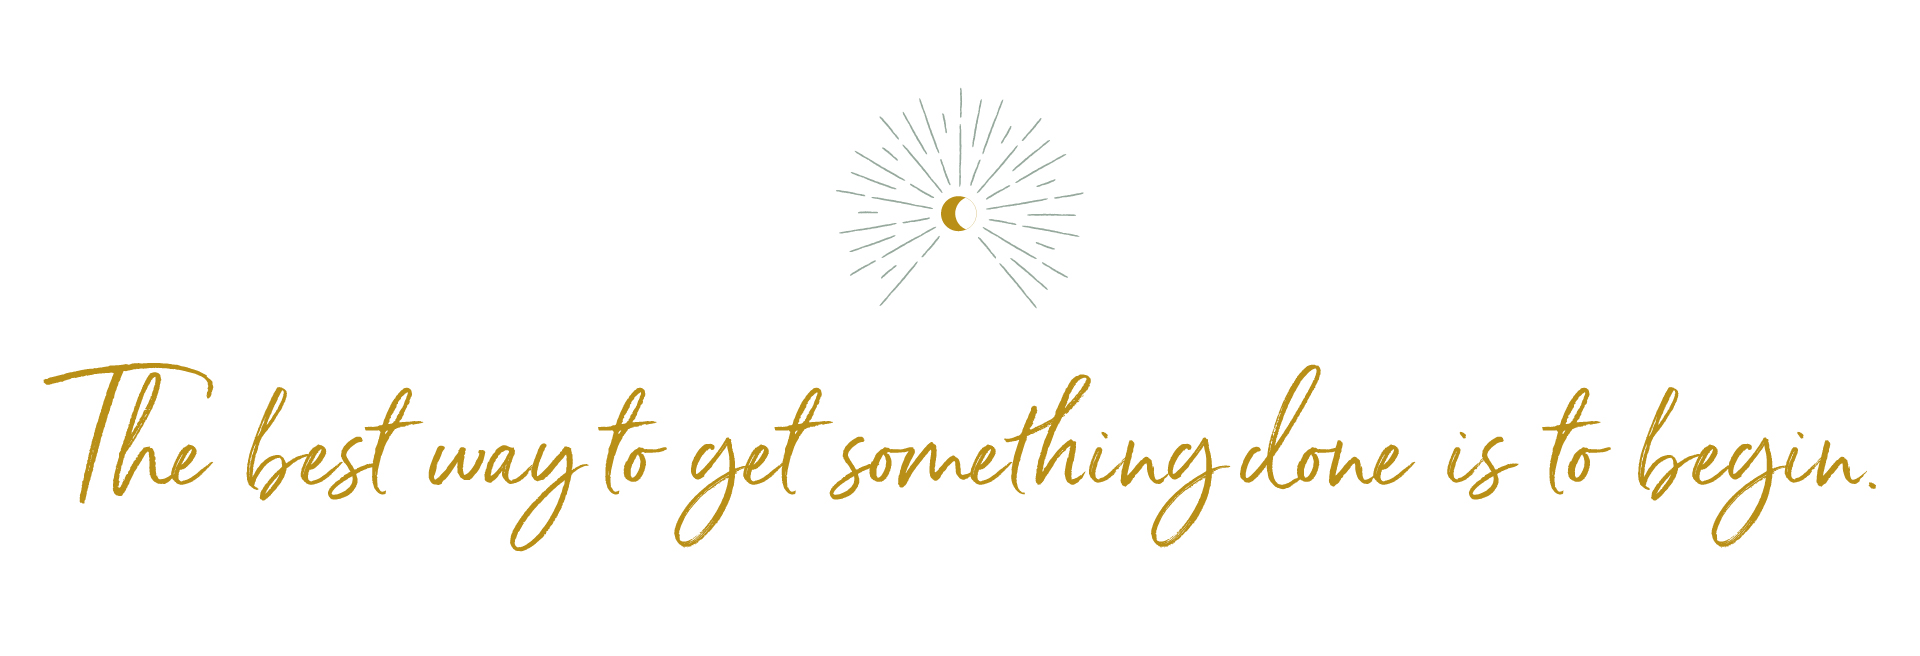 The best way to get something done is to begin. - niyama